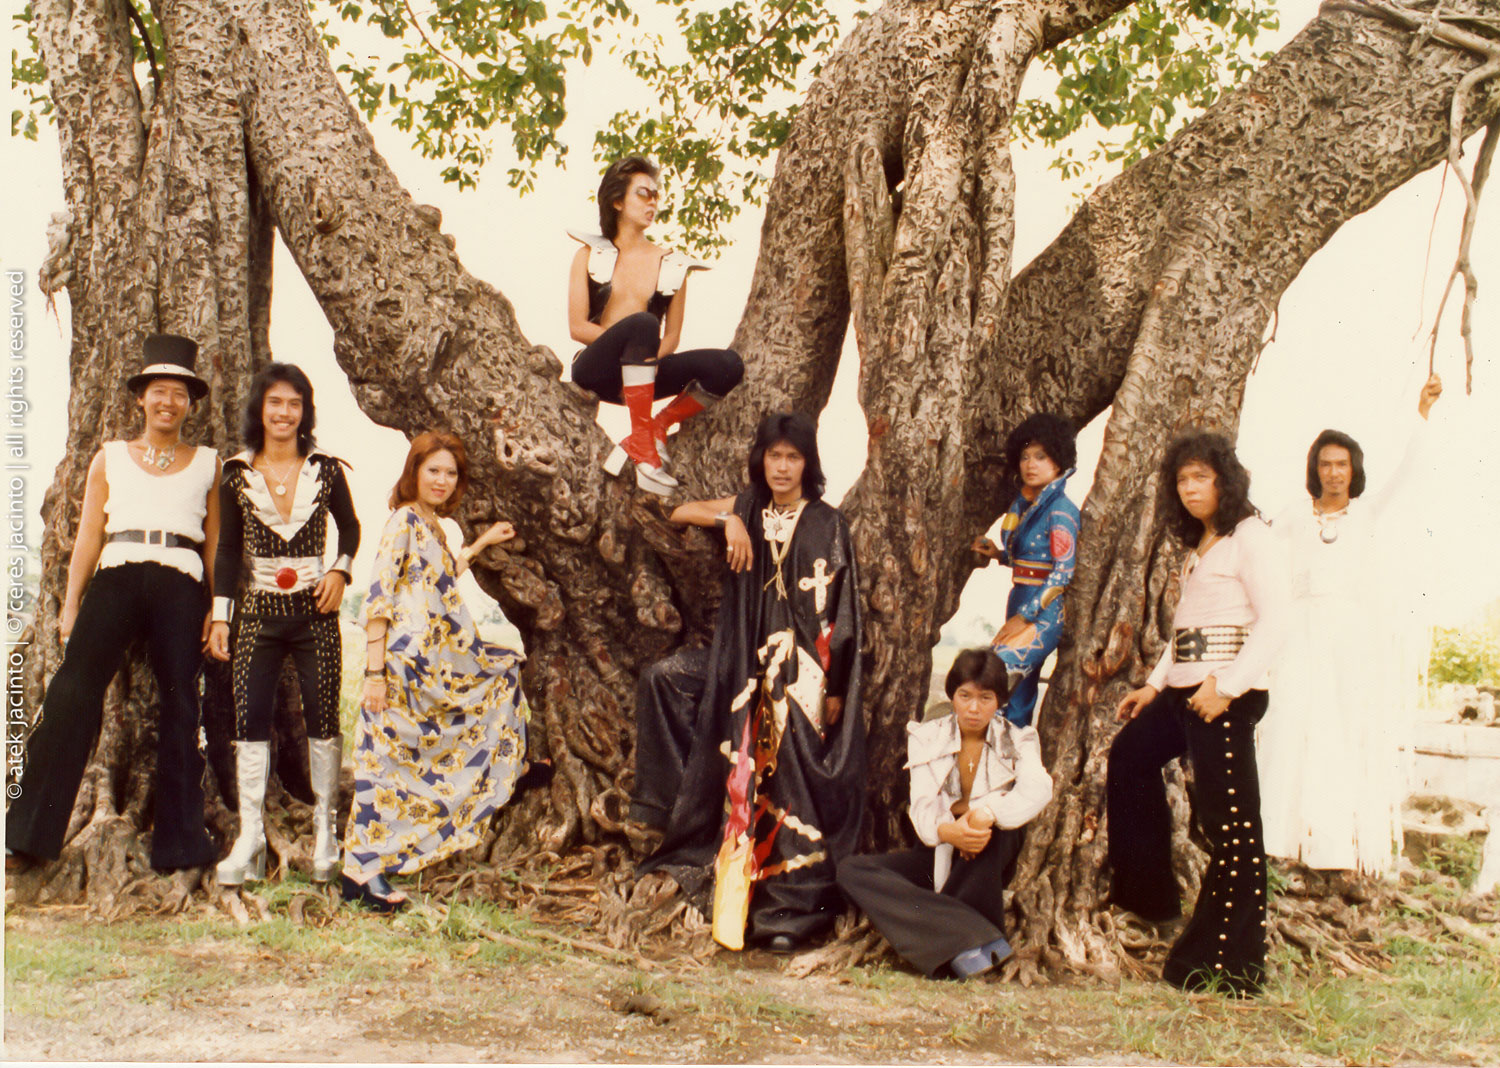 The Circus Band (1974) (Photo courtesy of Ceres Jacinto)